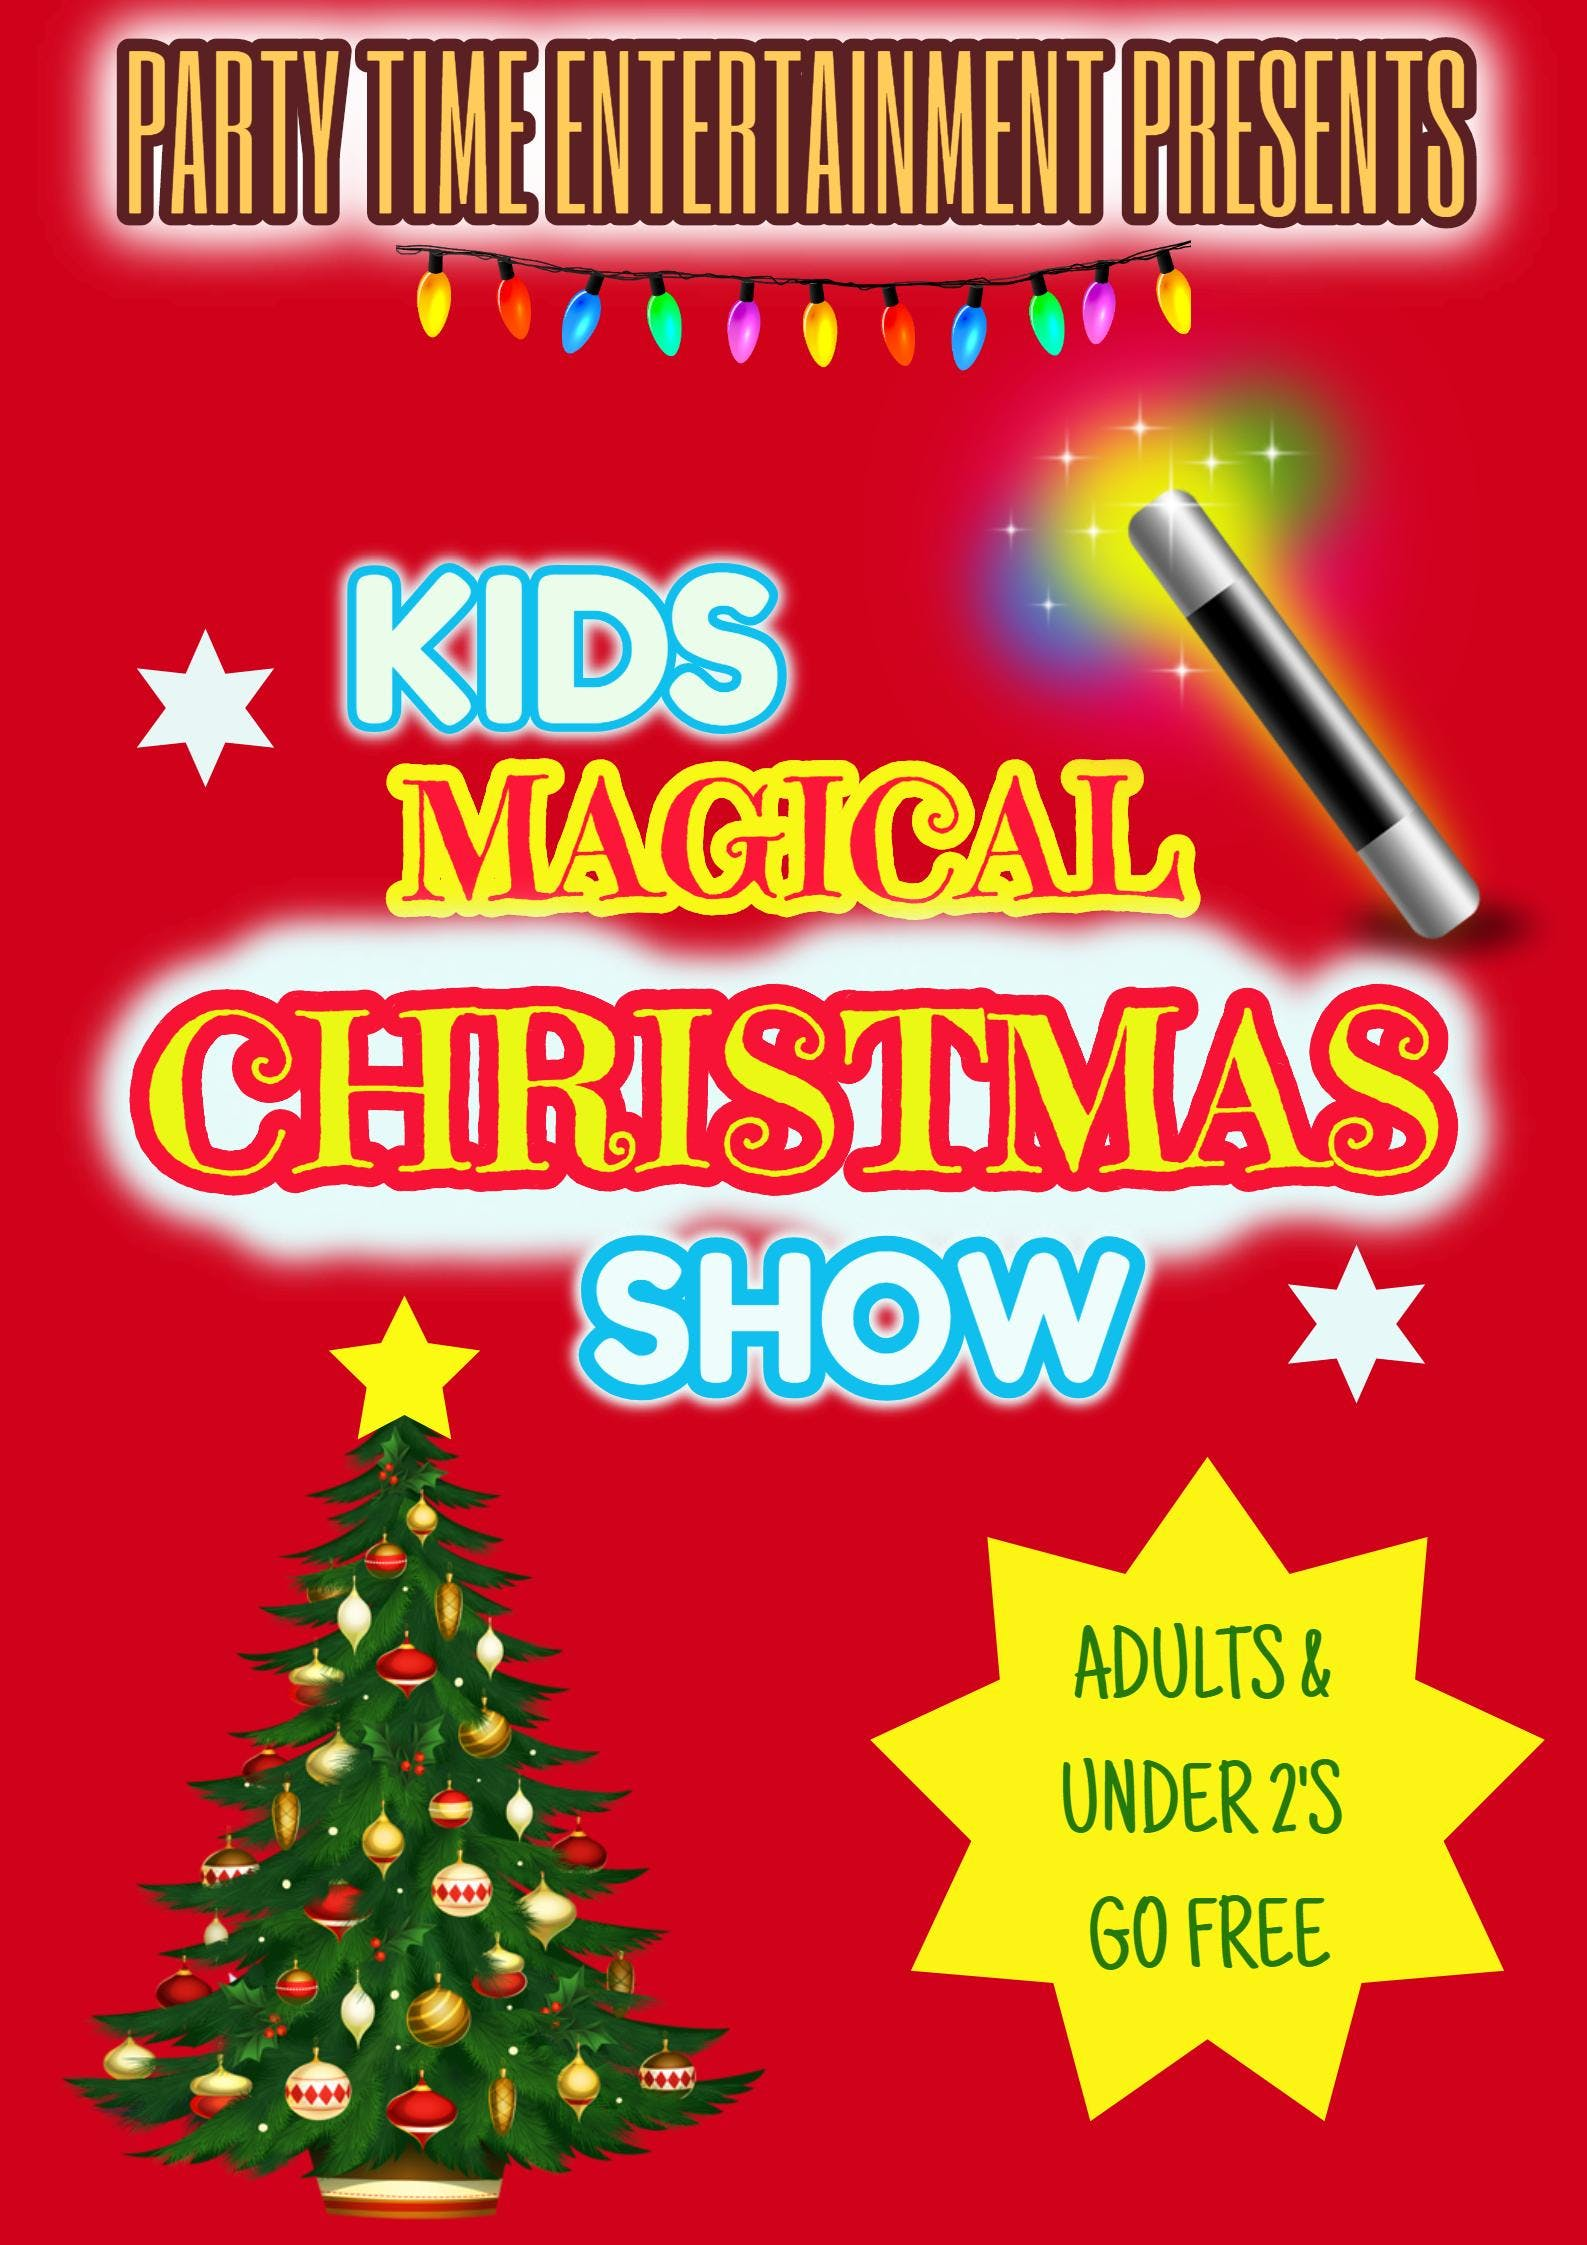 Kids Magical Christmas Show 2018 - Sligo